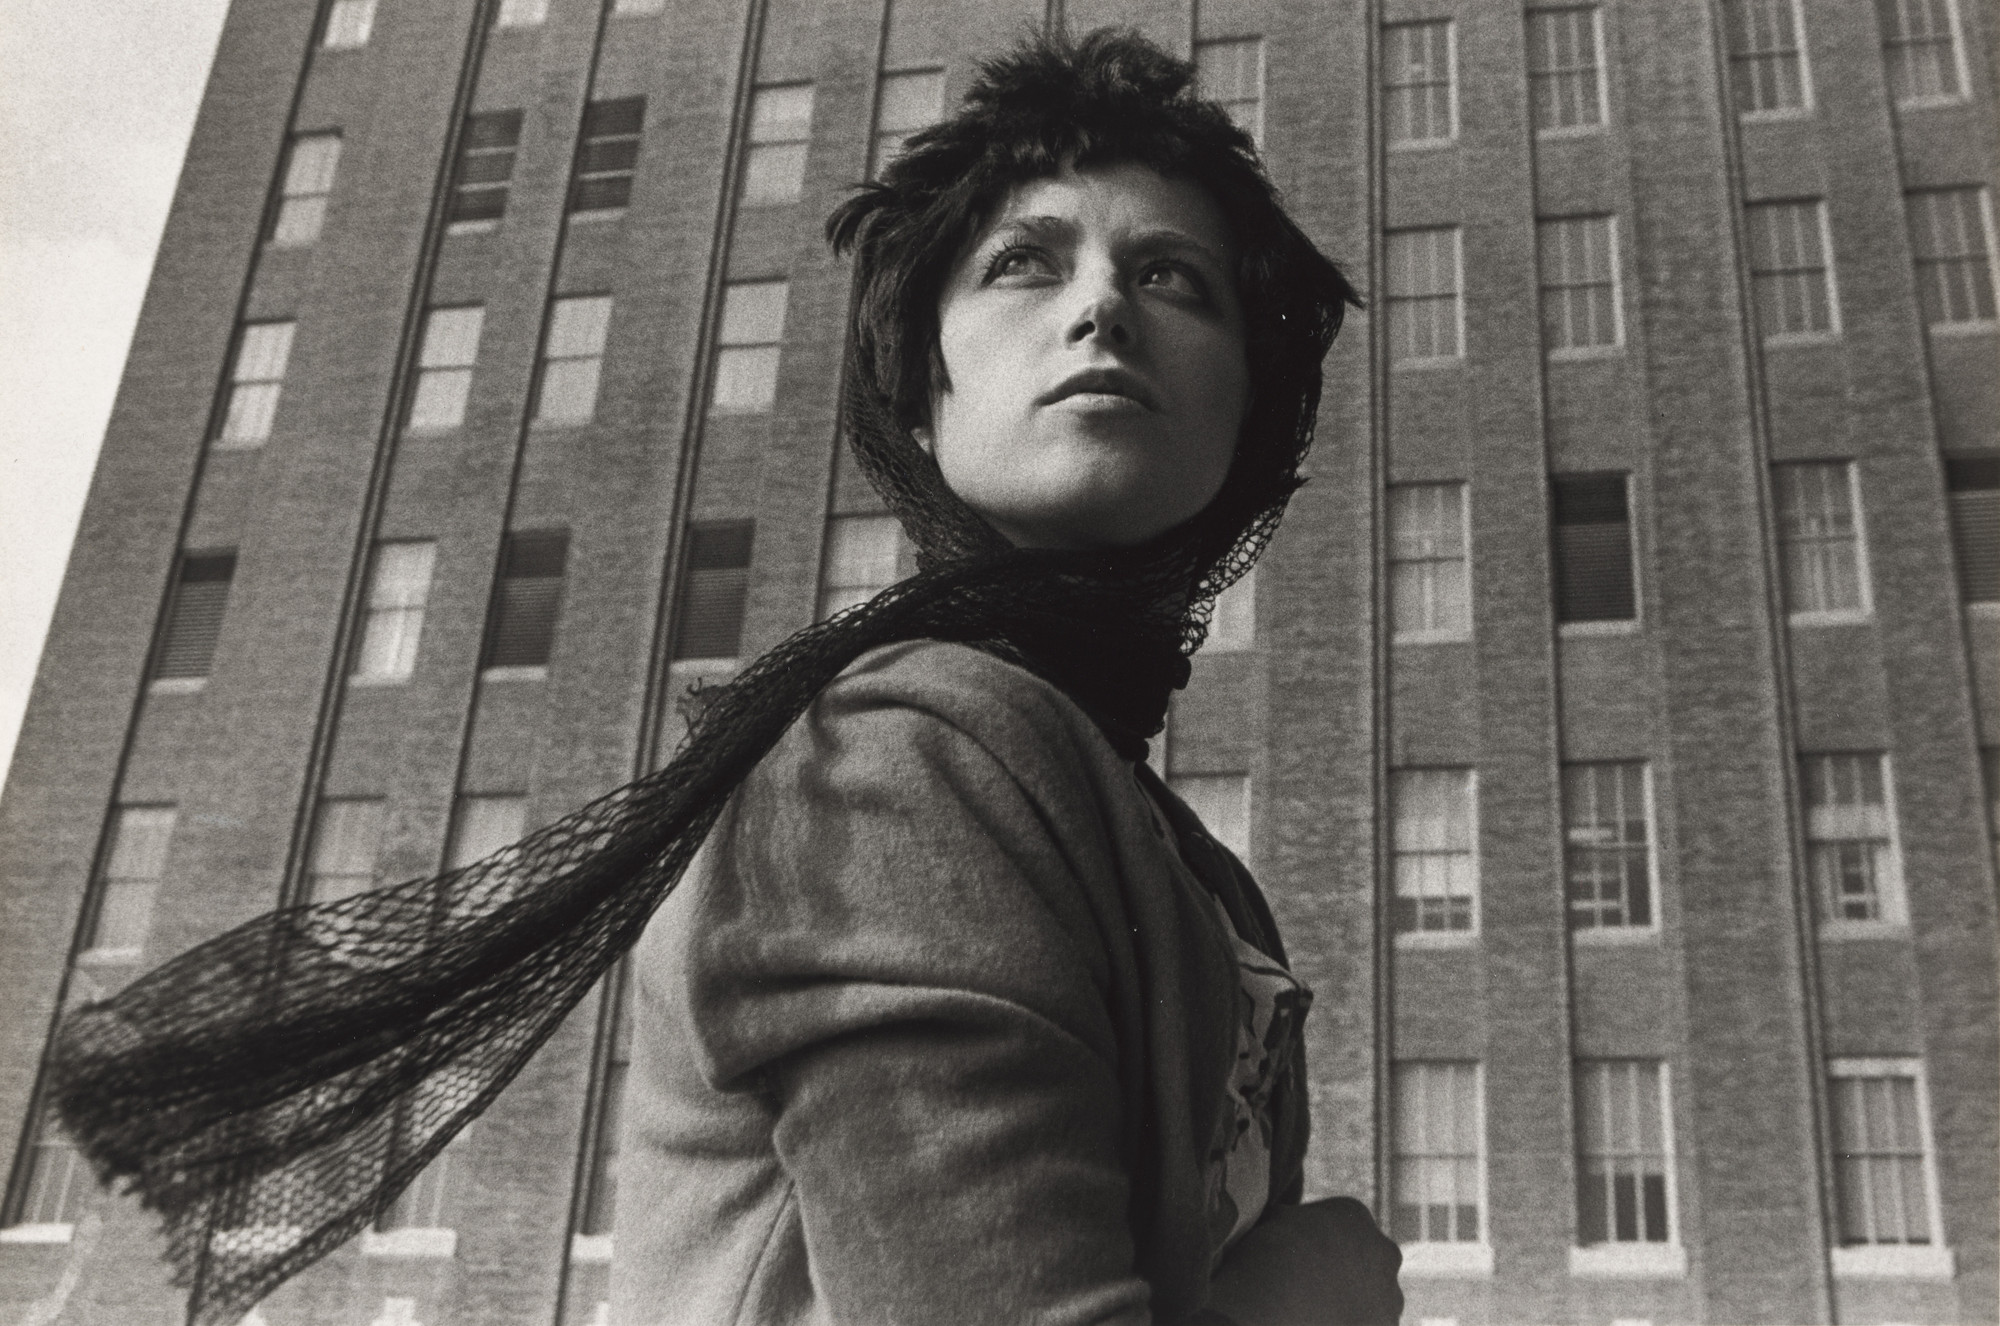 Cindy Sherman. Untitled Film Still #58. 1980